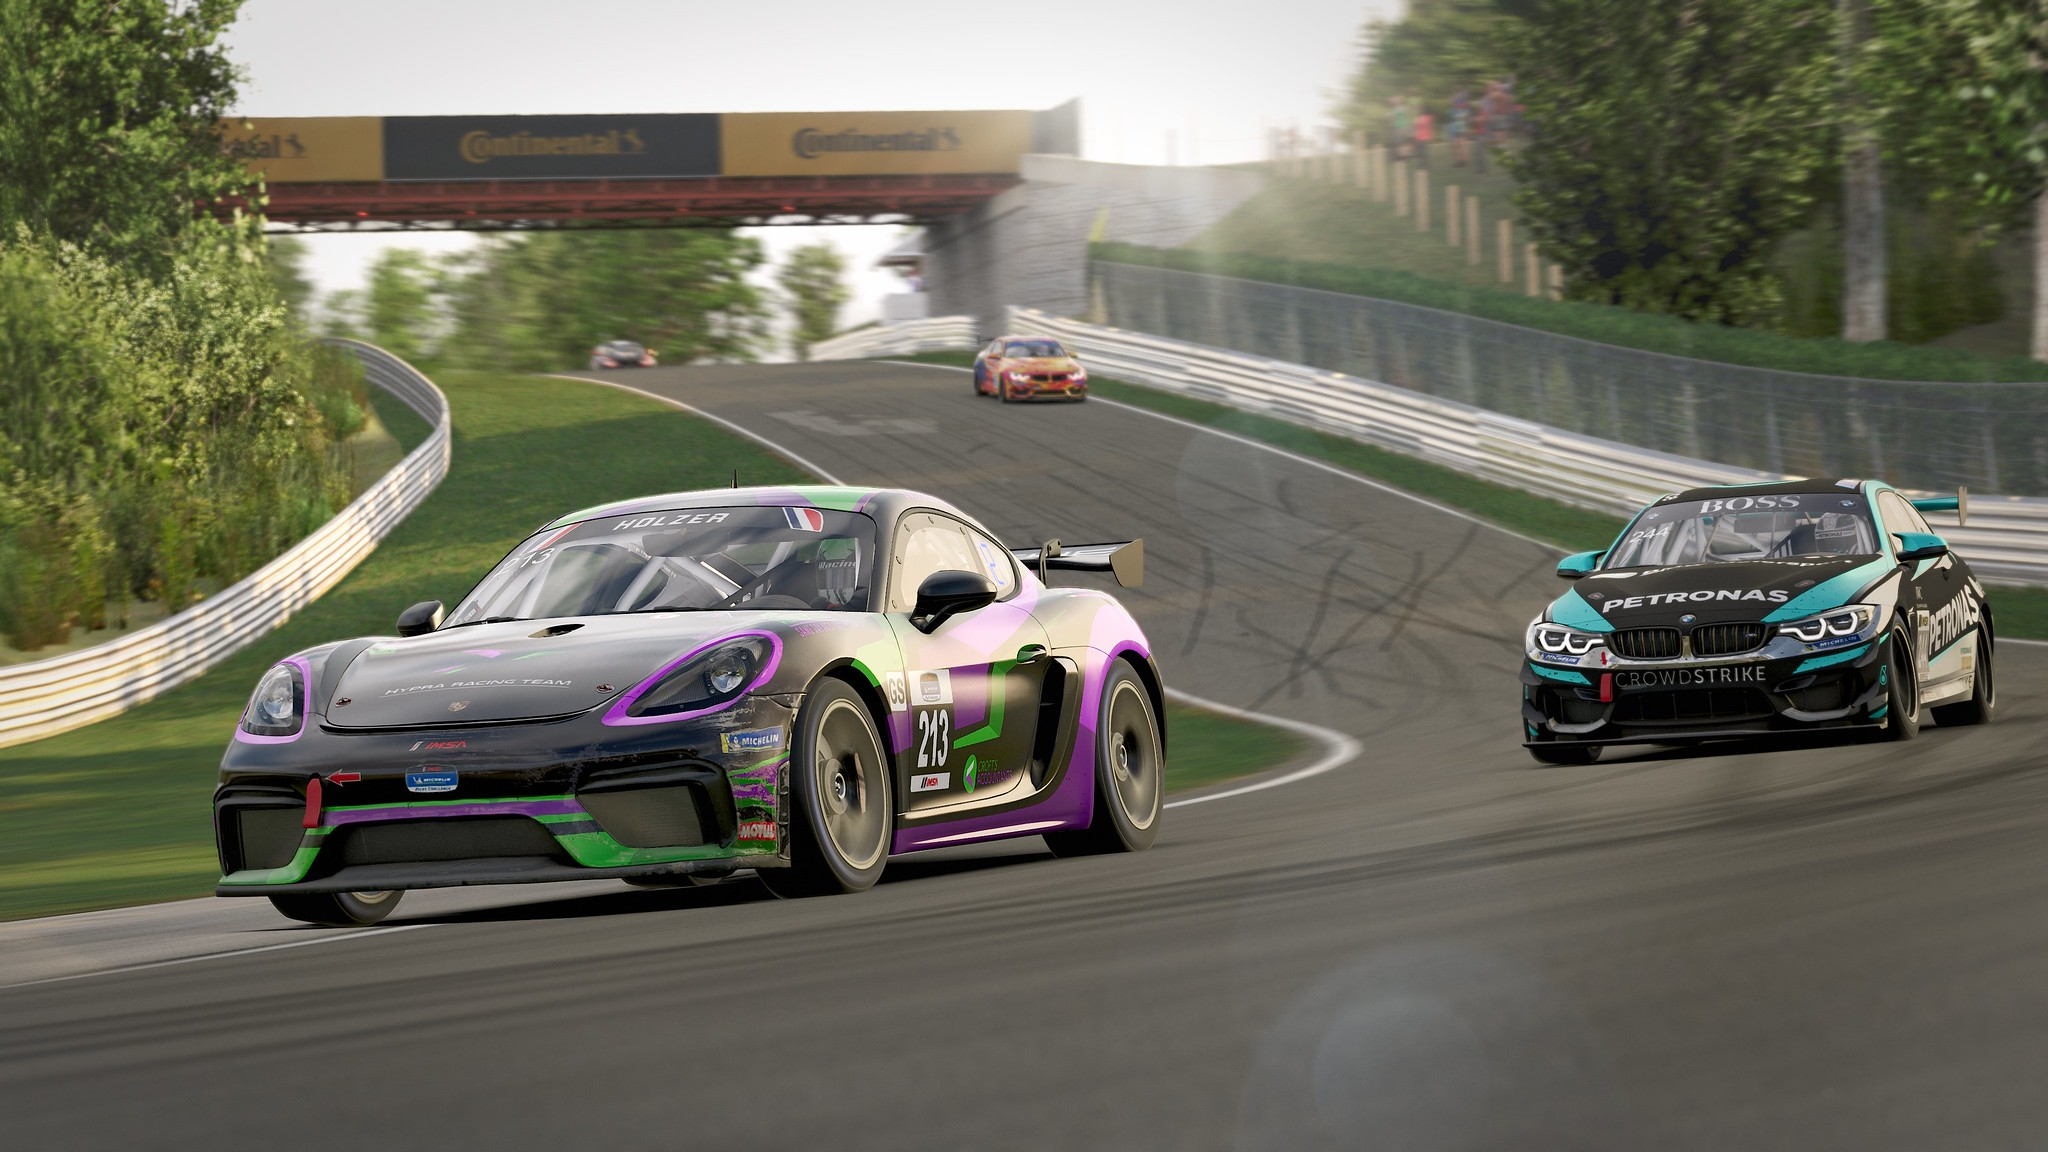 Apex Racing Academy GT4 VRS Super Series | Round 4 at Lime Rock Park (Broadcast)